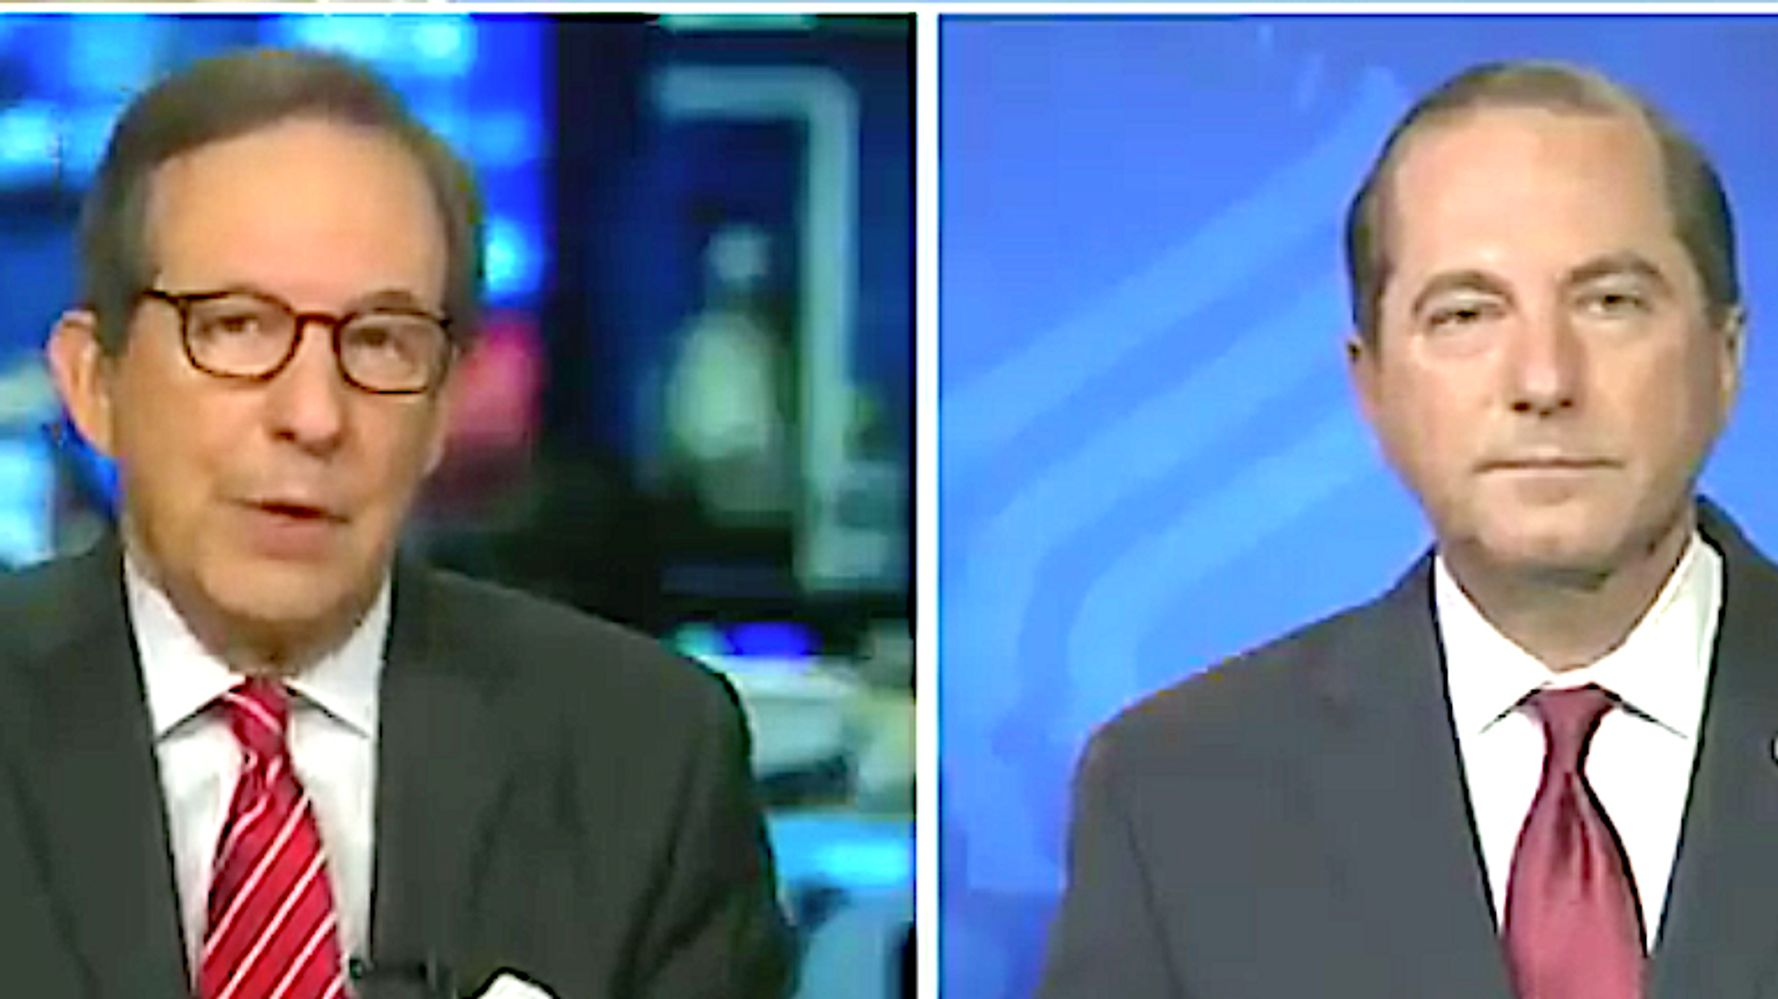 Fox News' Chris Wallace Schools Health Boss Azar On Joe Biden's Correct Title